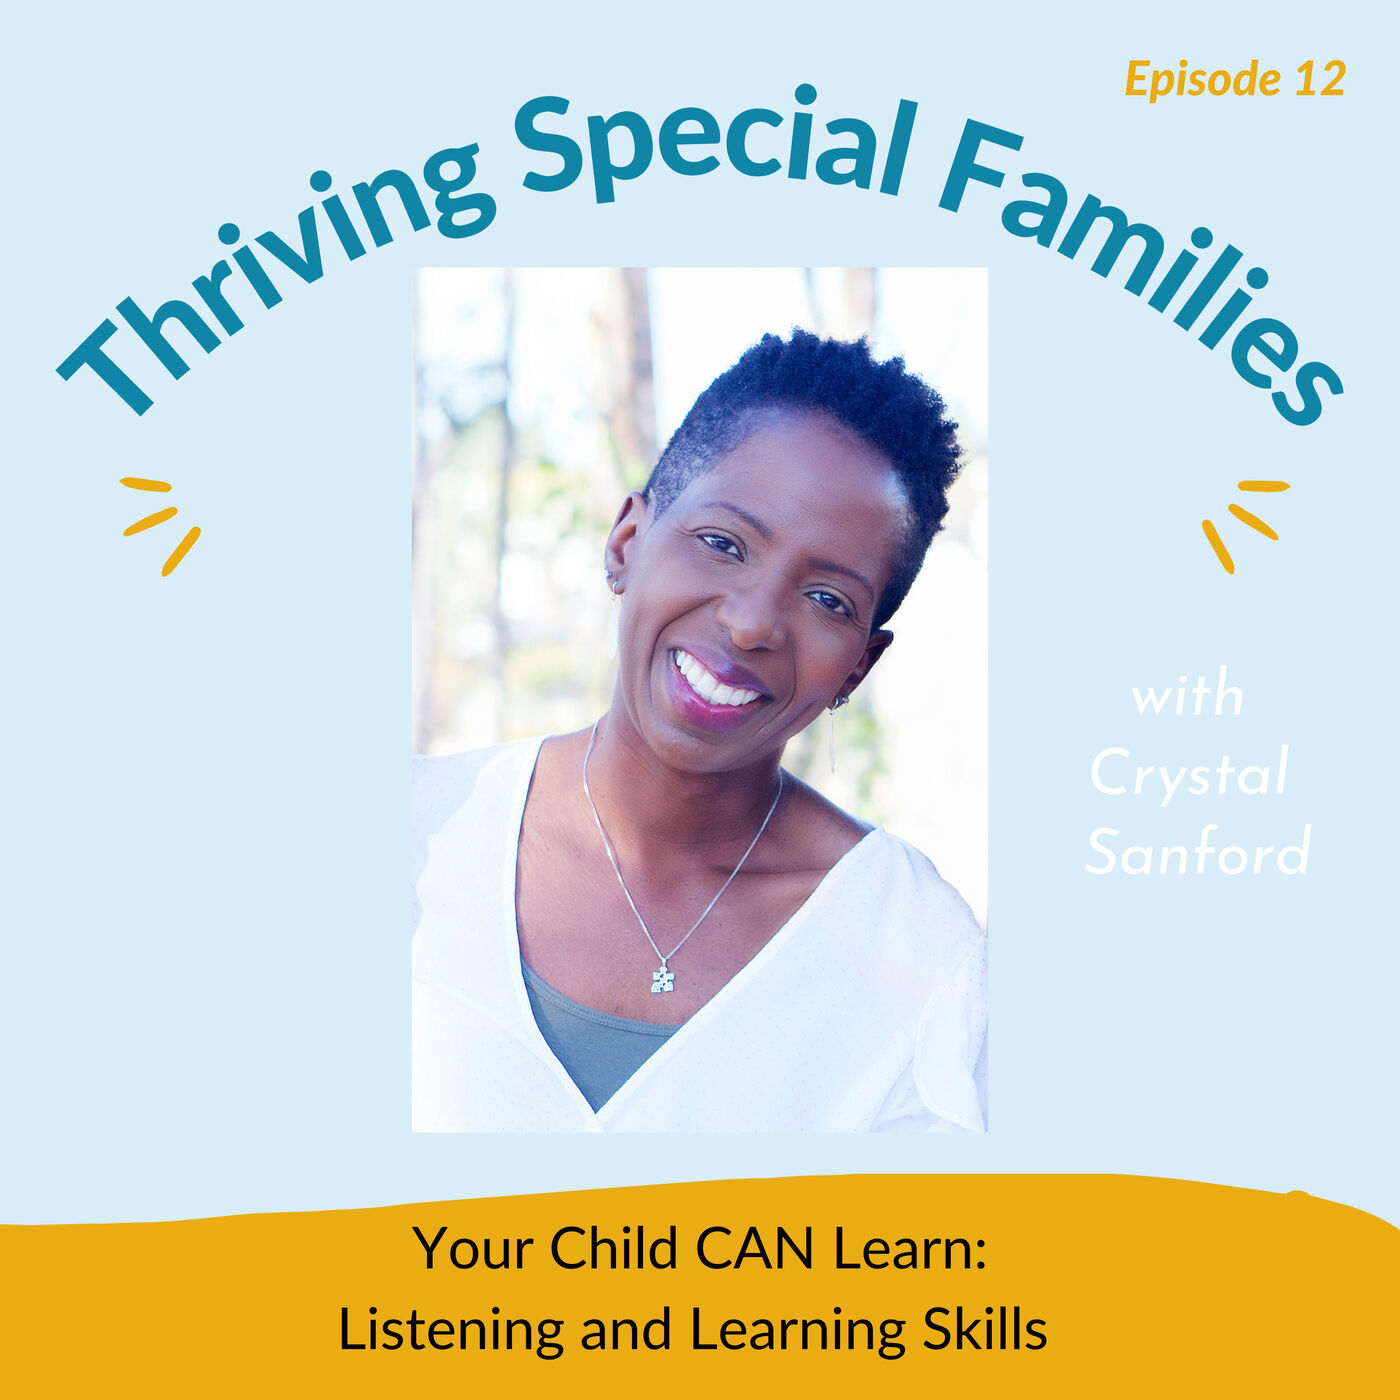 Your Child CAN Learn: Listening and Learning Skills